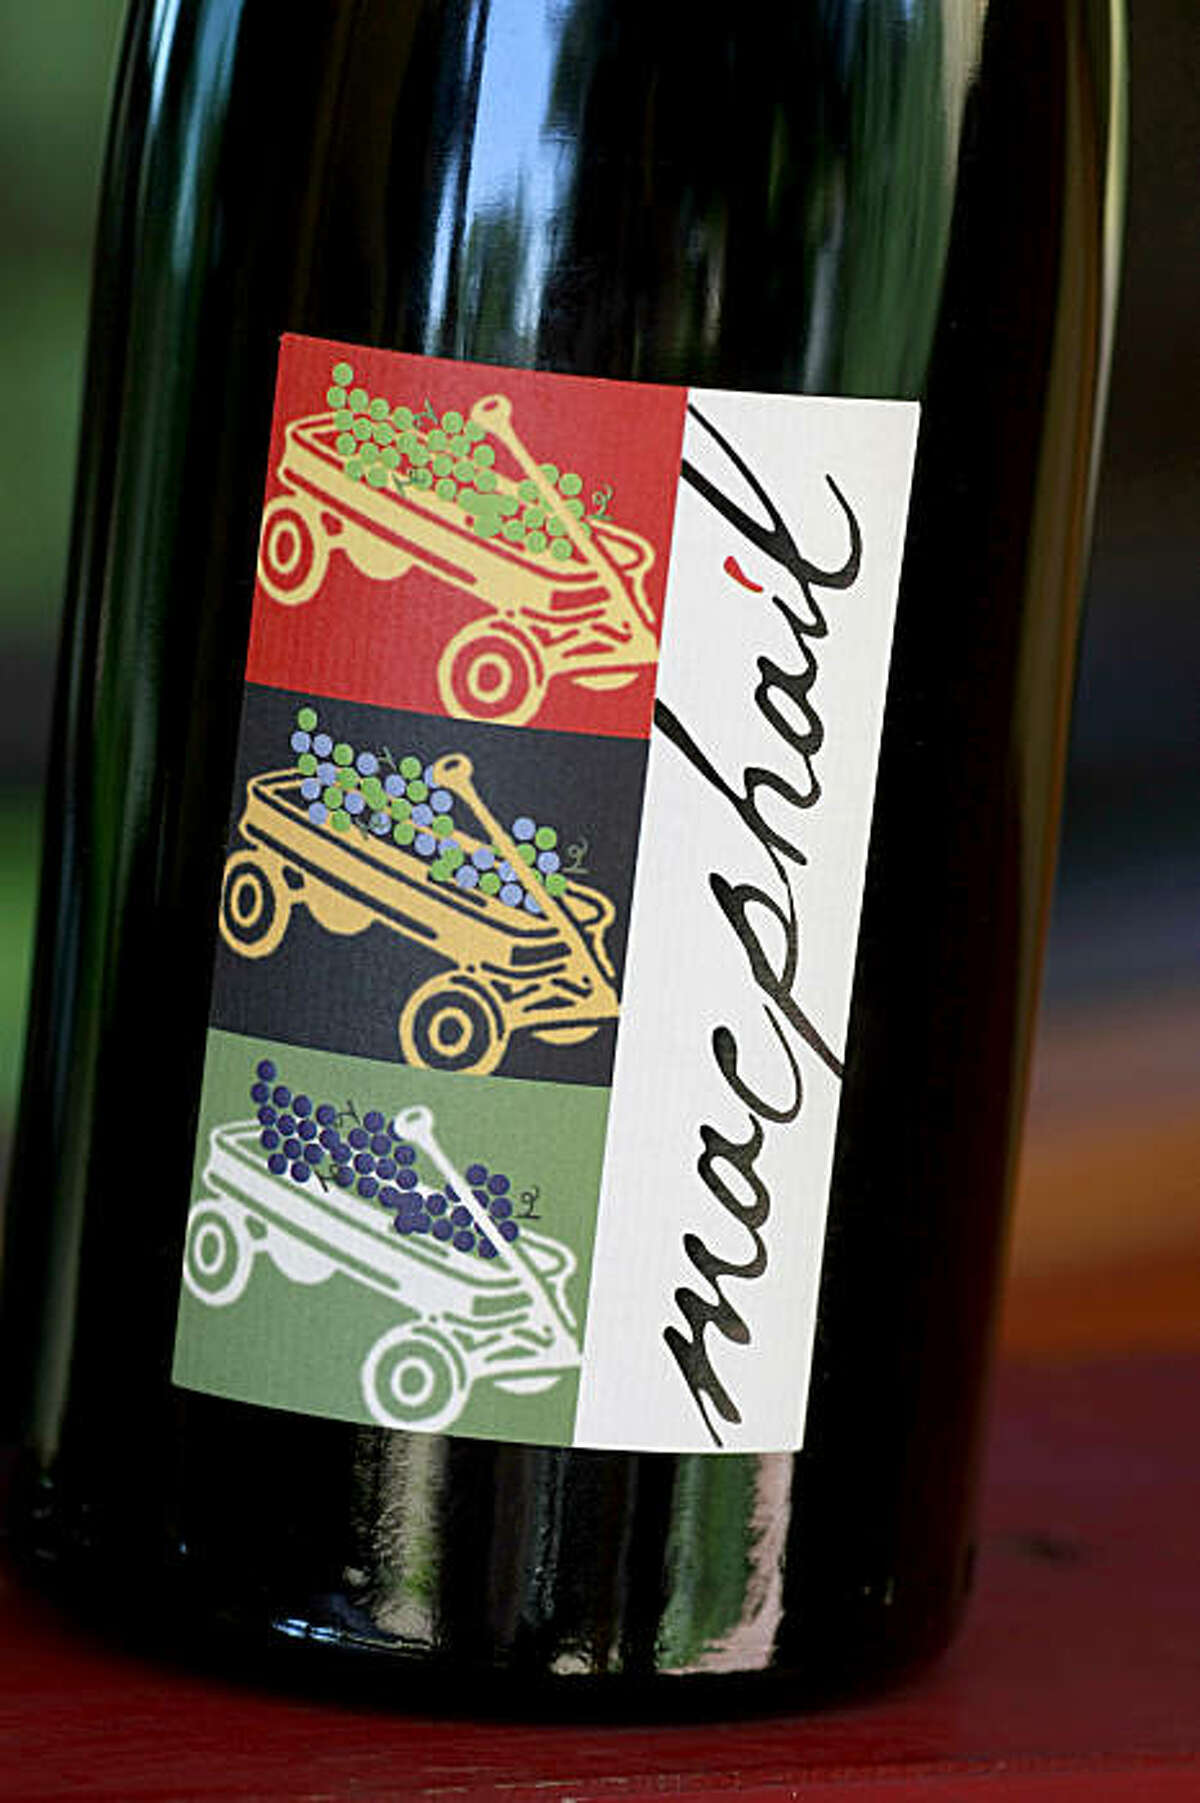 The MacPhail winery label was inspired by his first red wagon which sits on the porch of his home. Winemaker James MacPhail at his Healdsburg winery on Magnolia Drive just off Westside Thursday September 24, 2009.